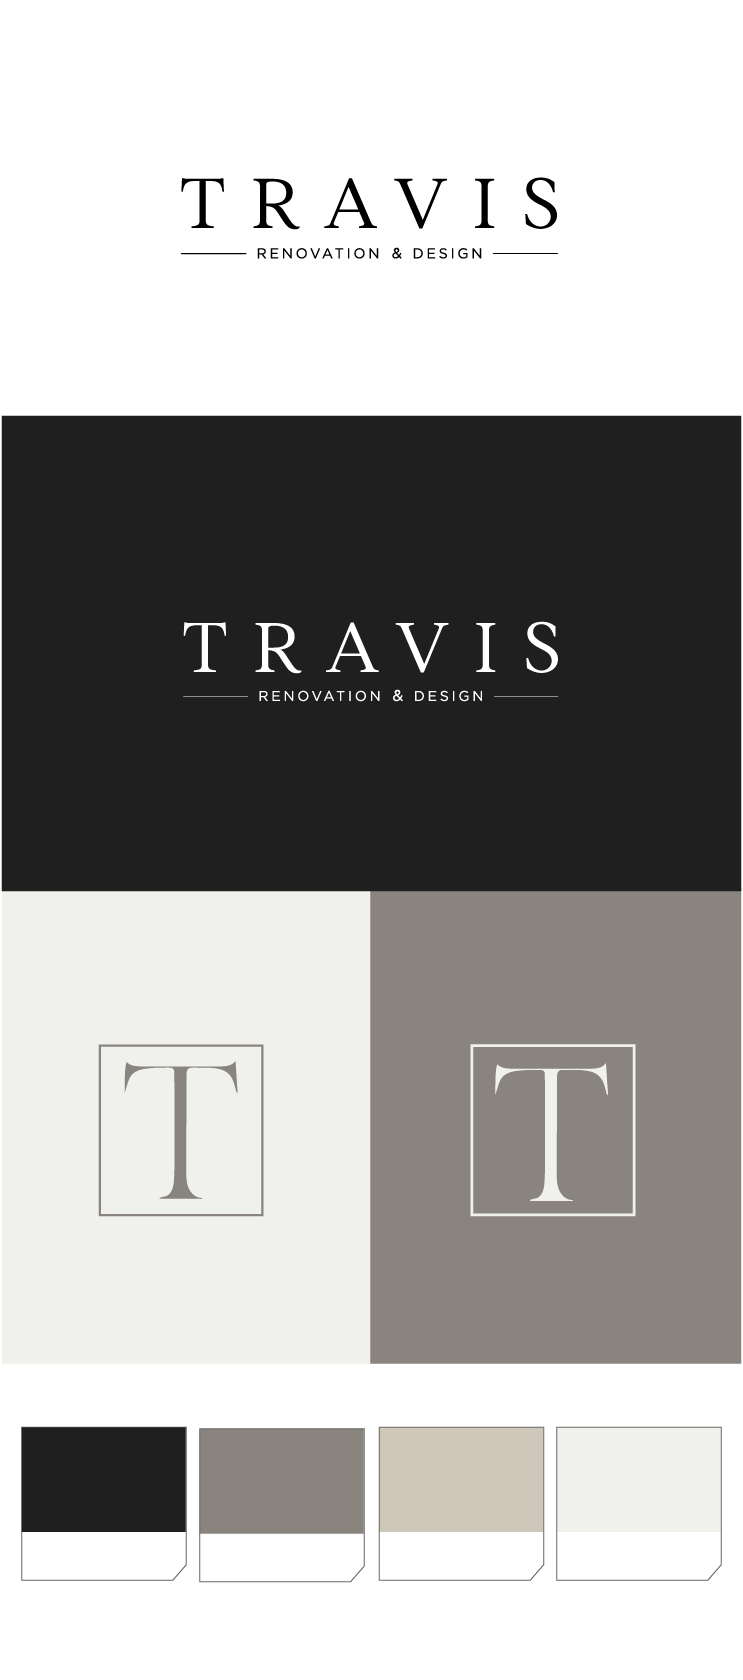 Logo Design and custom color palette for Travis Renovation & Design in Virginia.